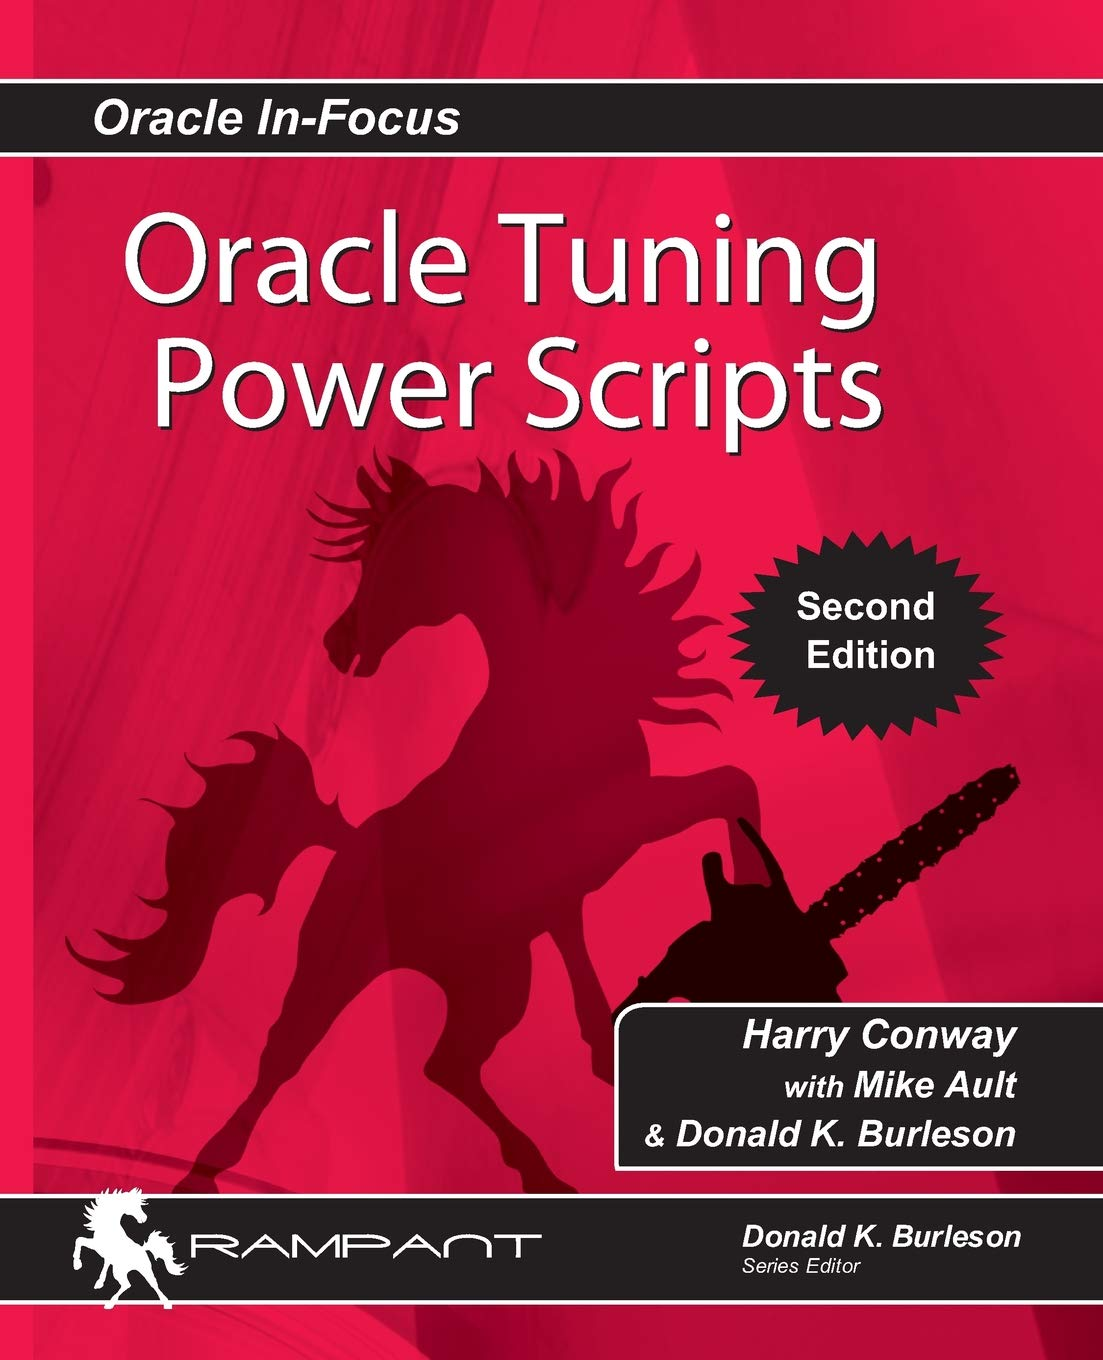 Oracle Tuning Power Scripts: With 100+ High Performance SQL Scripts (Oracle In-Focus) (Volume 10) pdf